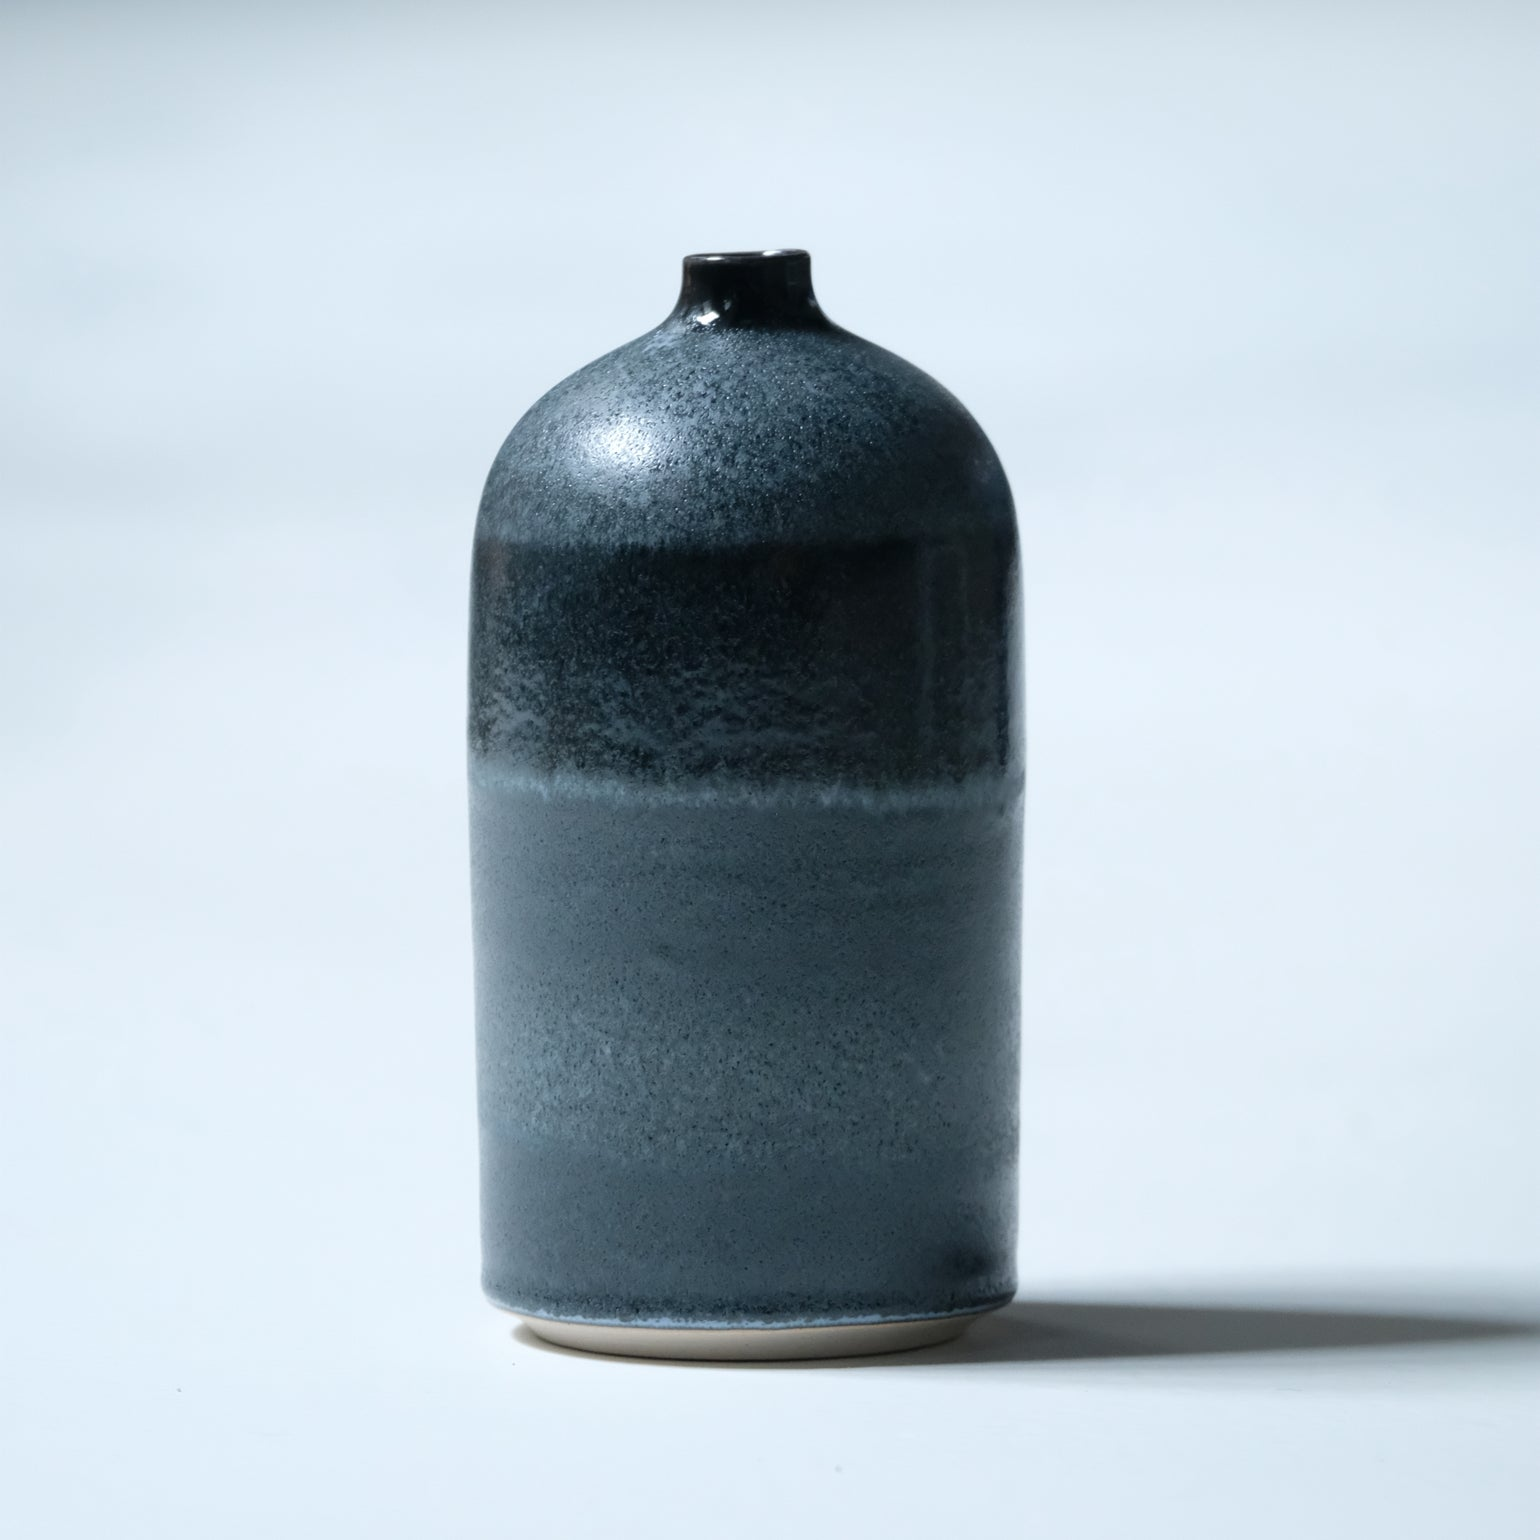 Image of UNIKA BOTTLE IN FROSTED BLACK GLAZE